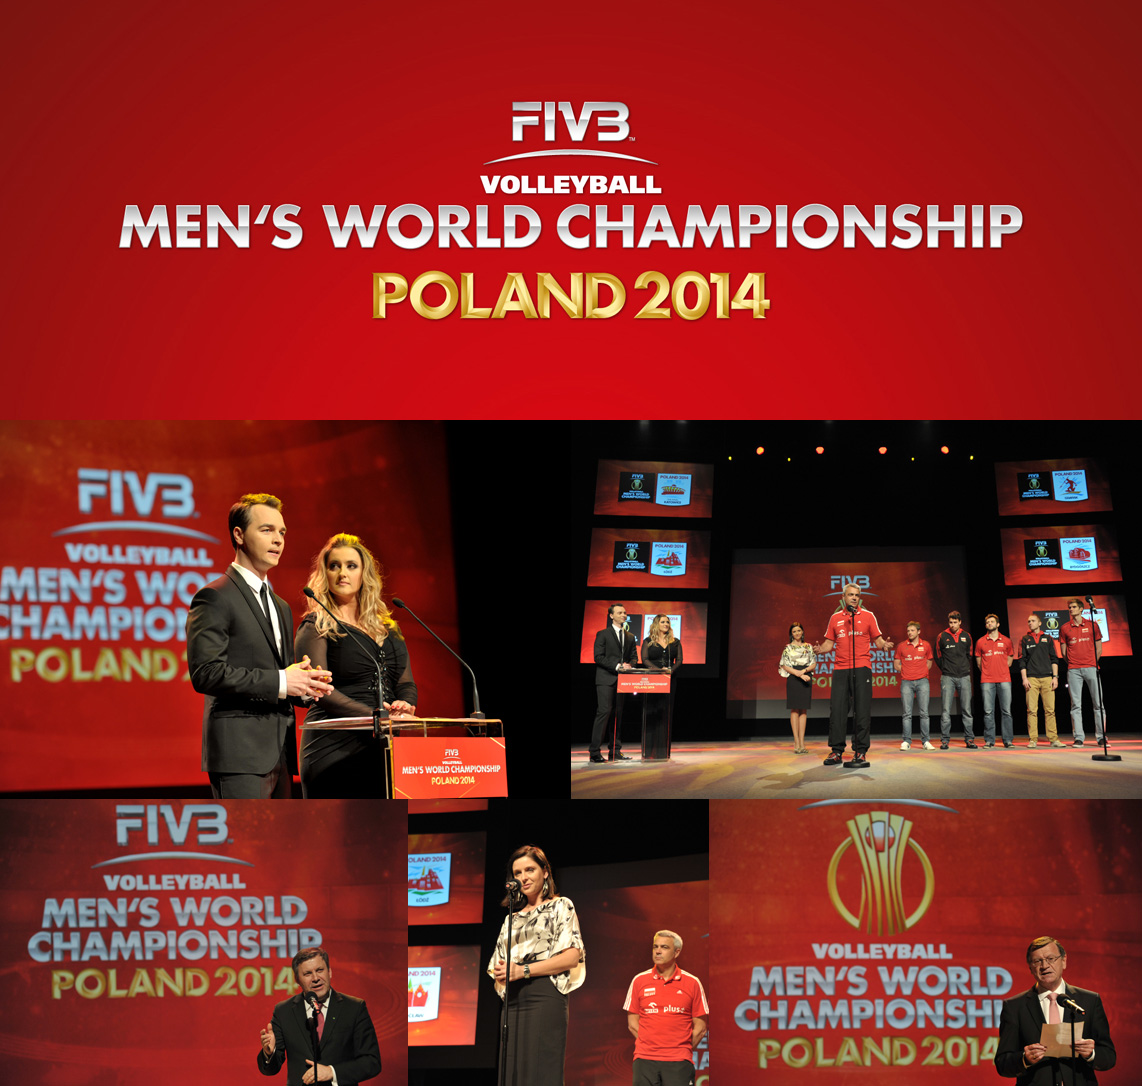 RedComm FIVB Event